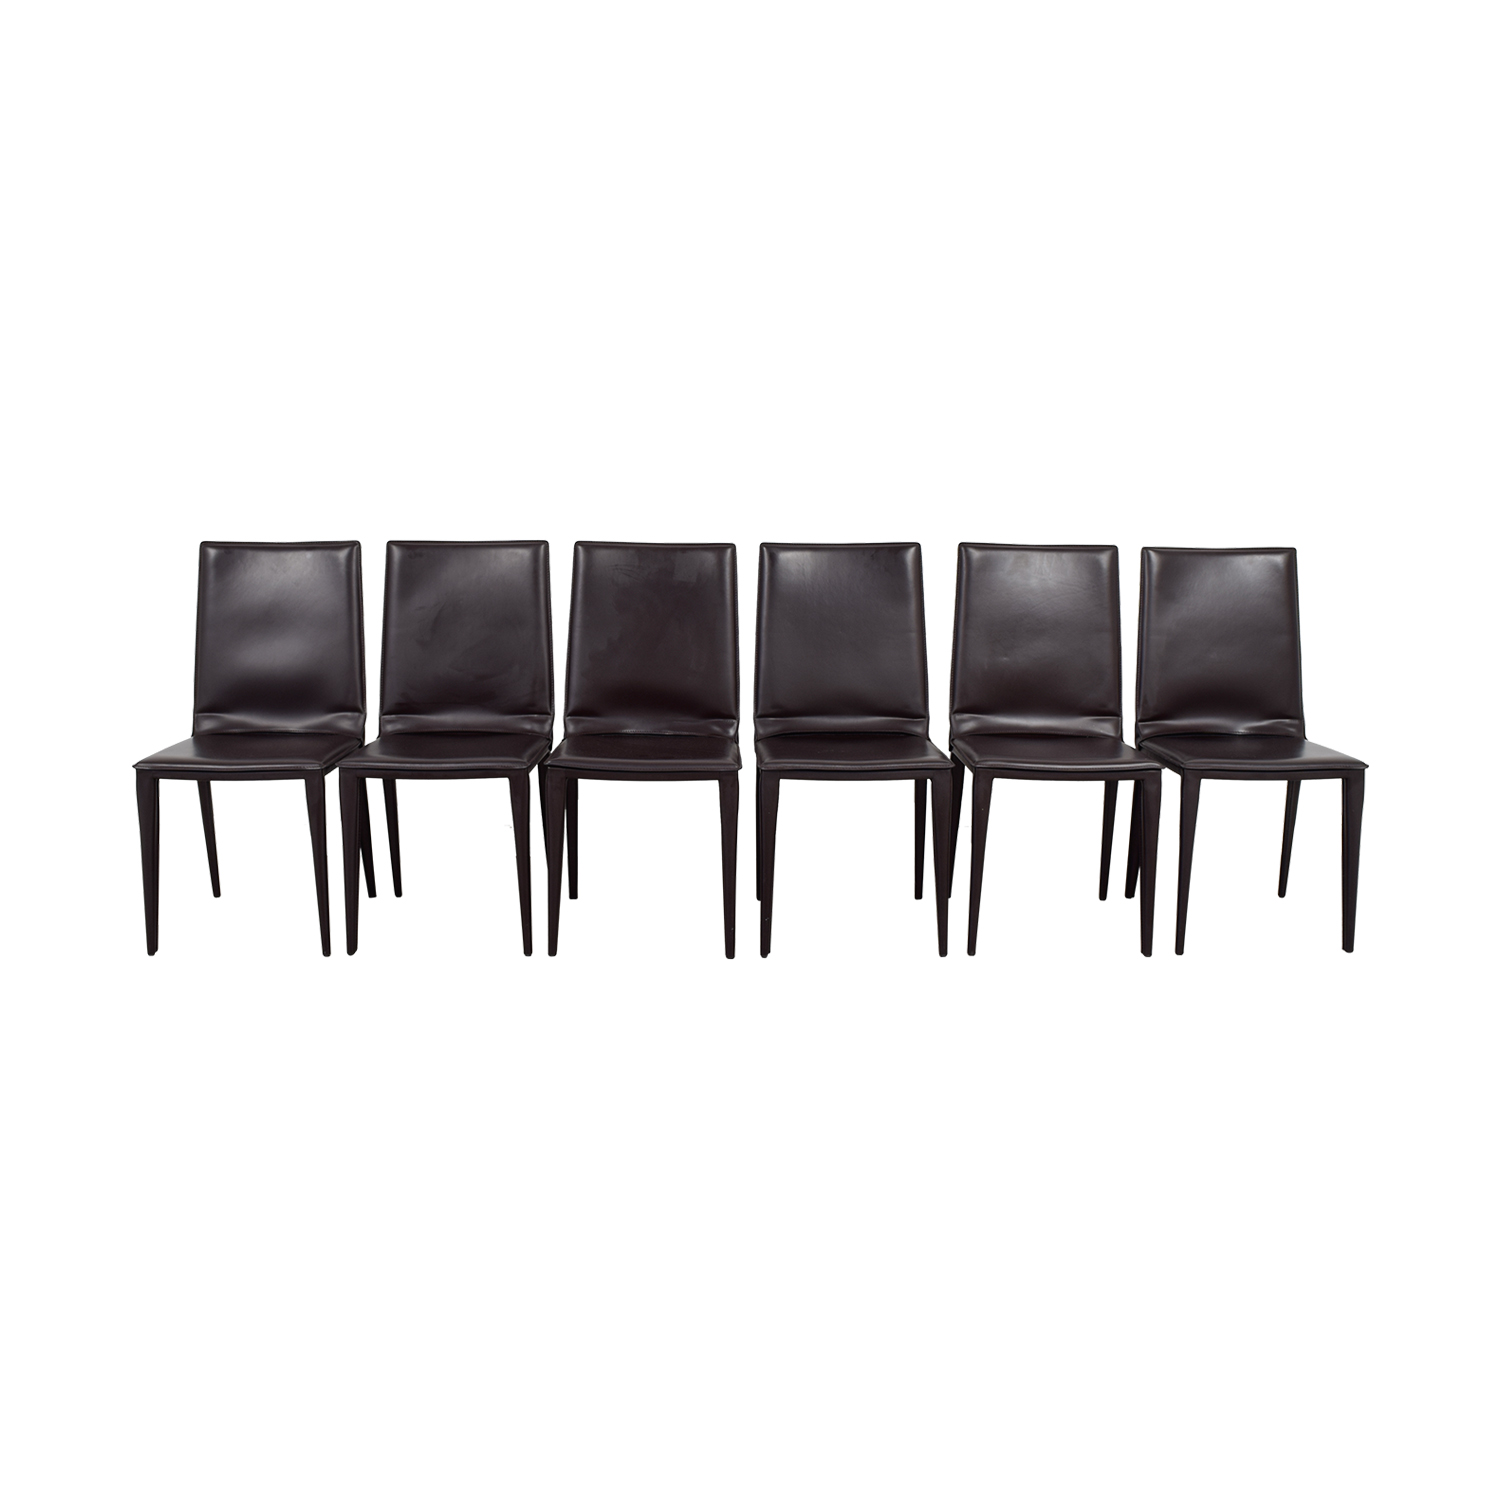 Frag Frag Brown Leather Dining Room Chairs used